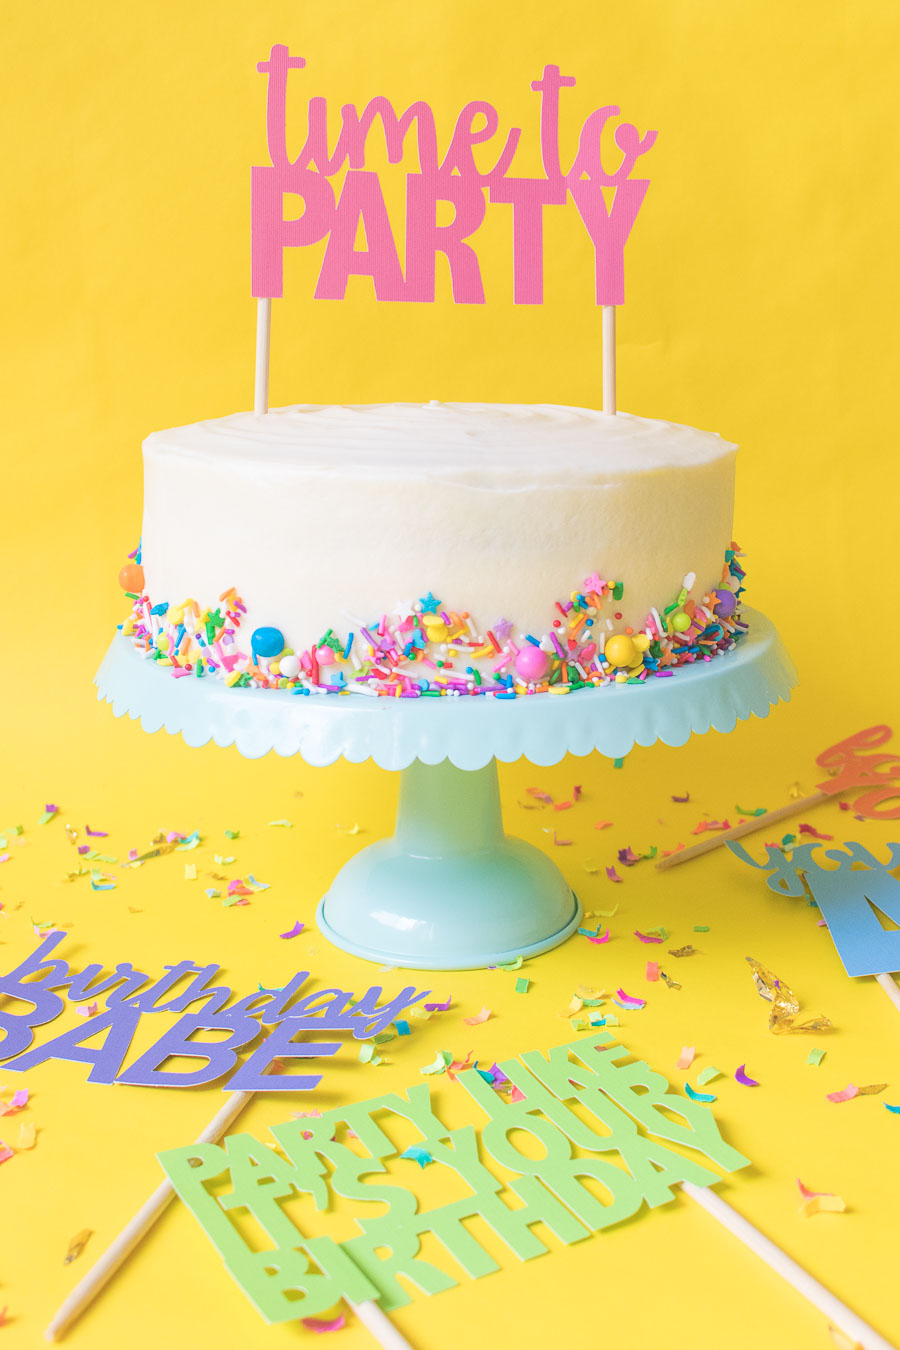 Printable Cake Toppers For Birthdays (+ Free Svg Templates!) - Free Printable Birthday Cake